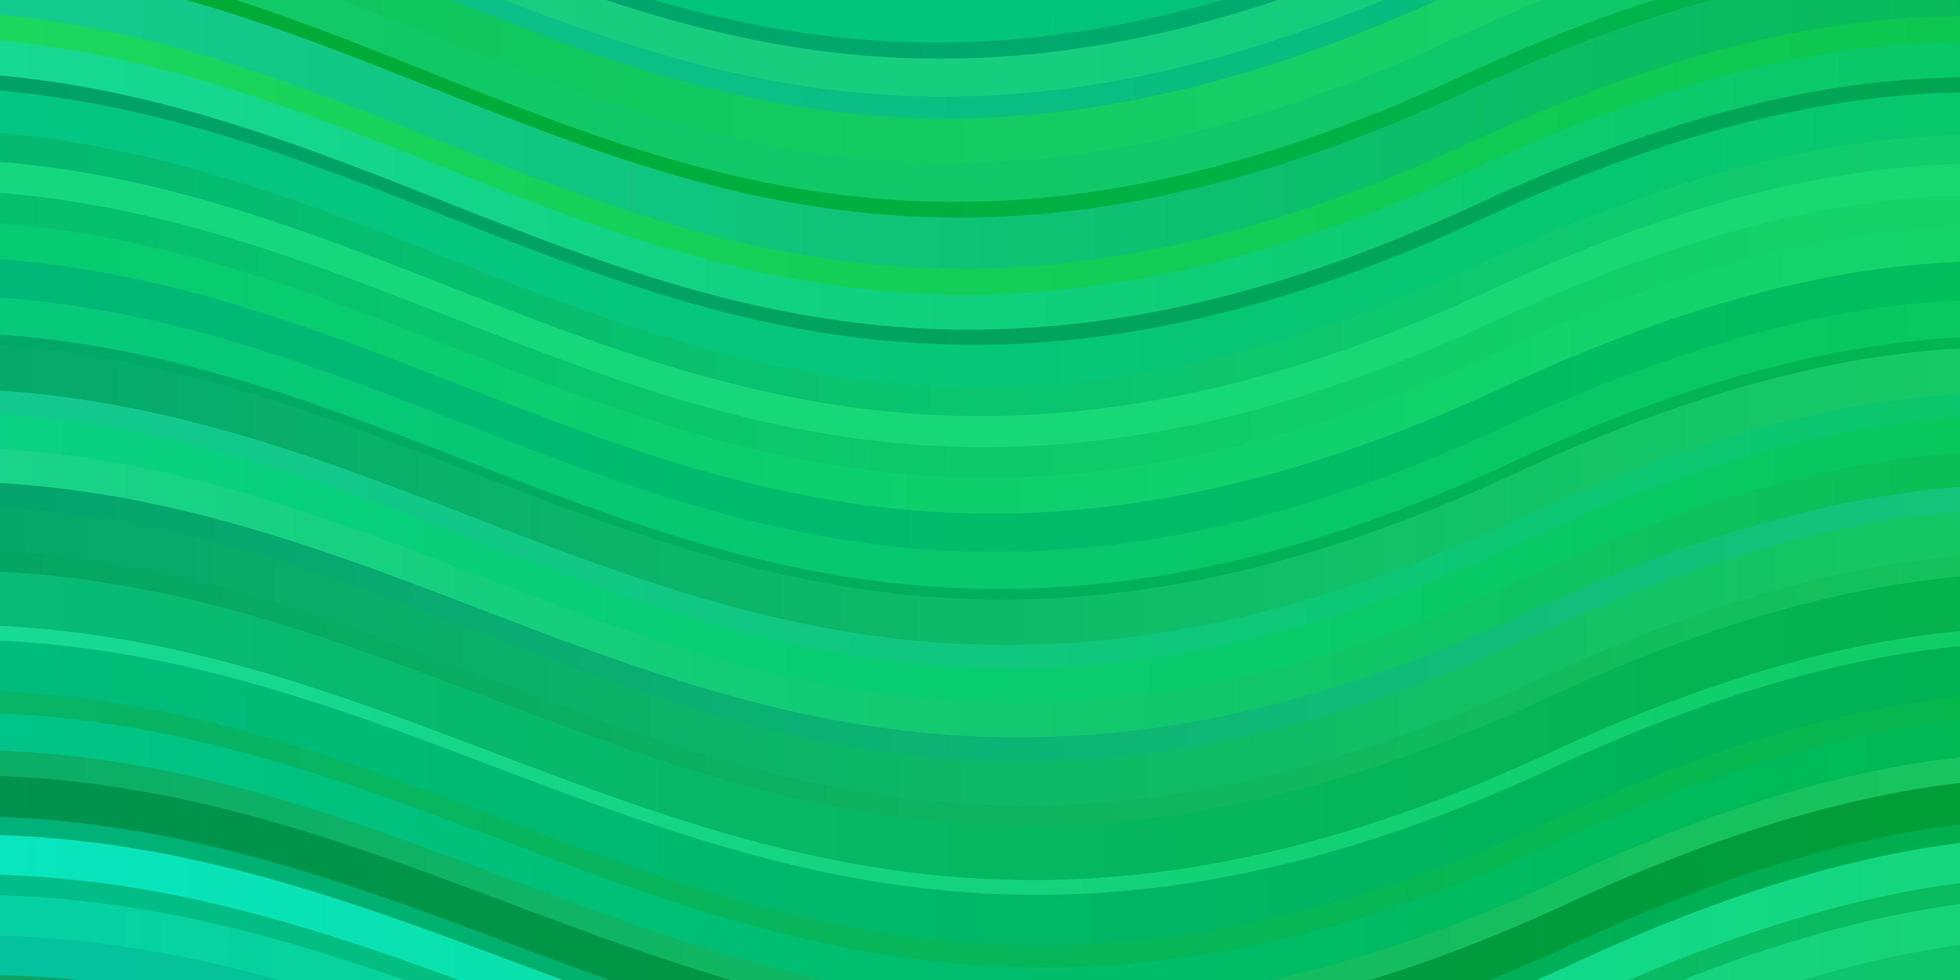 Light Green background with wry lines. vector